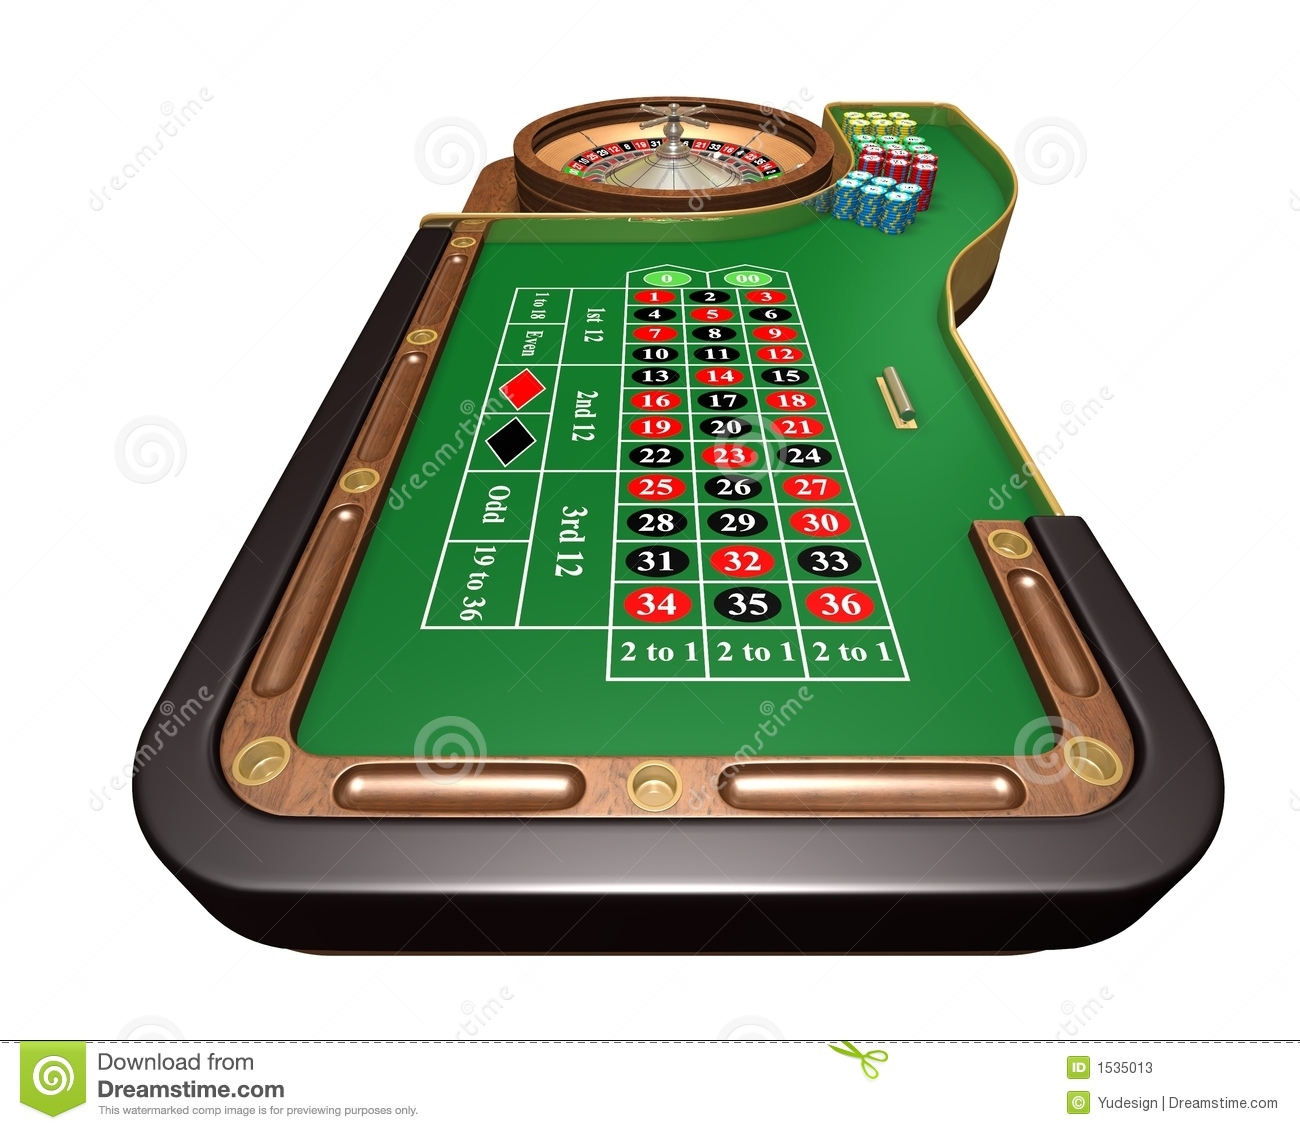 Roulette table stock photos image 1535013 - Table tv a roulettes ...